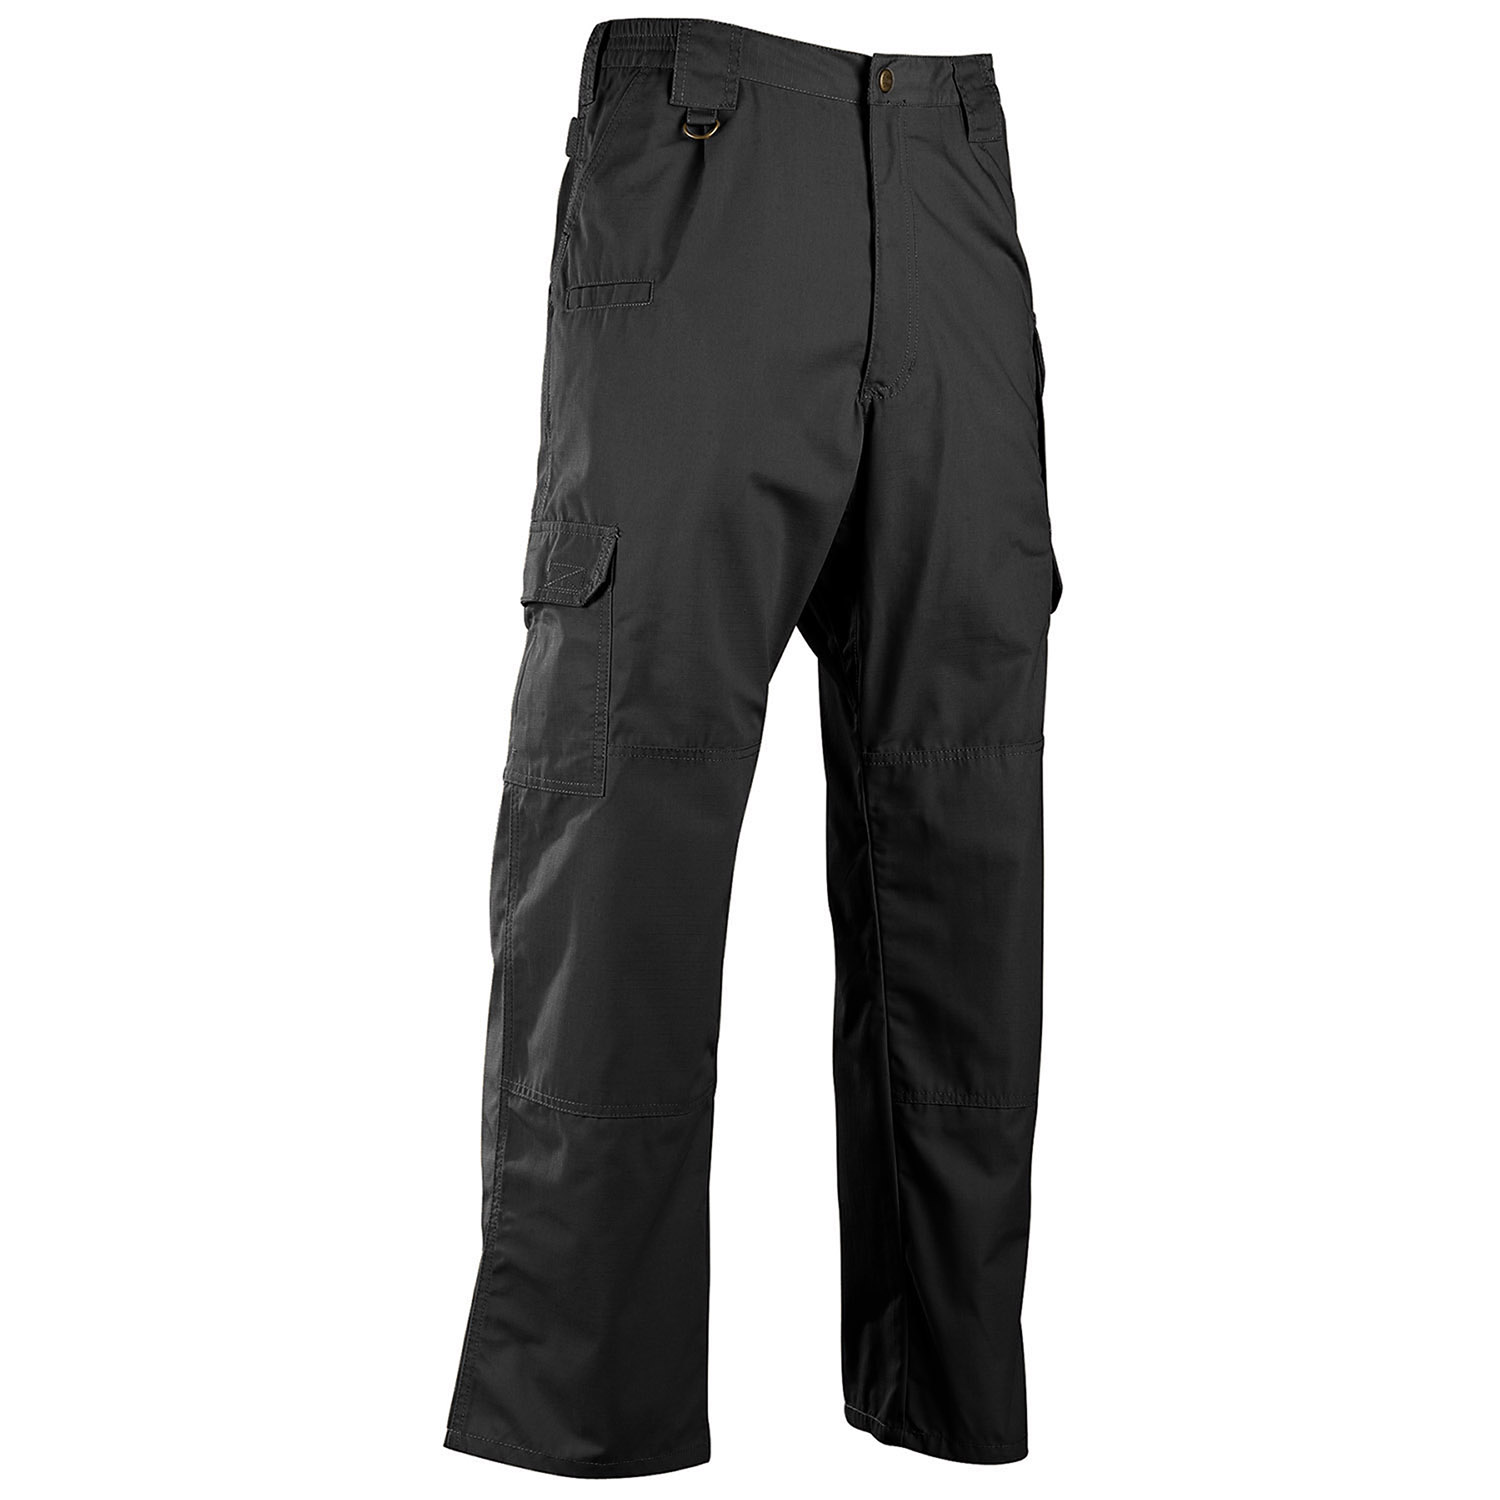 2b3b023f0b Premium Uniform Pants, Tactical Cargo Pants, Casual Duty Pants